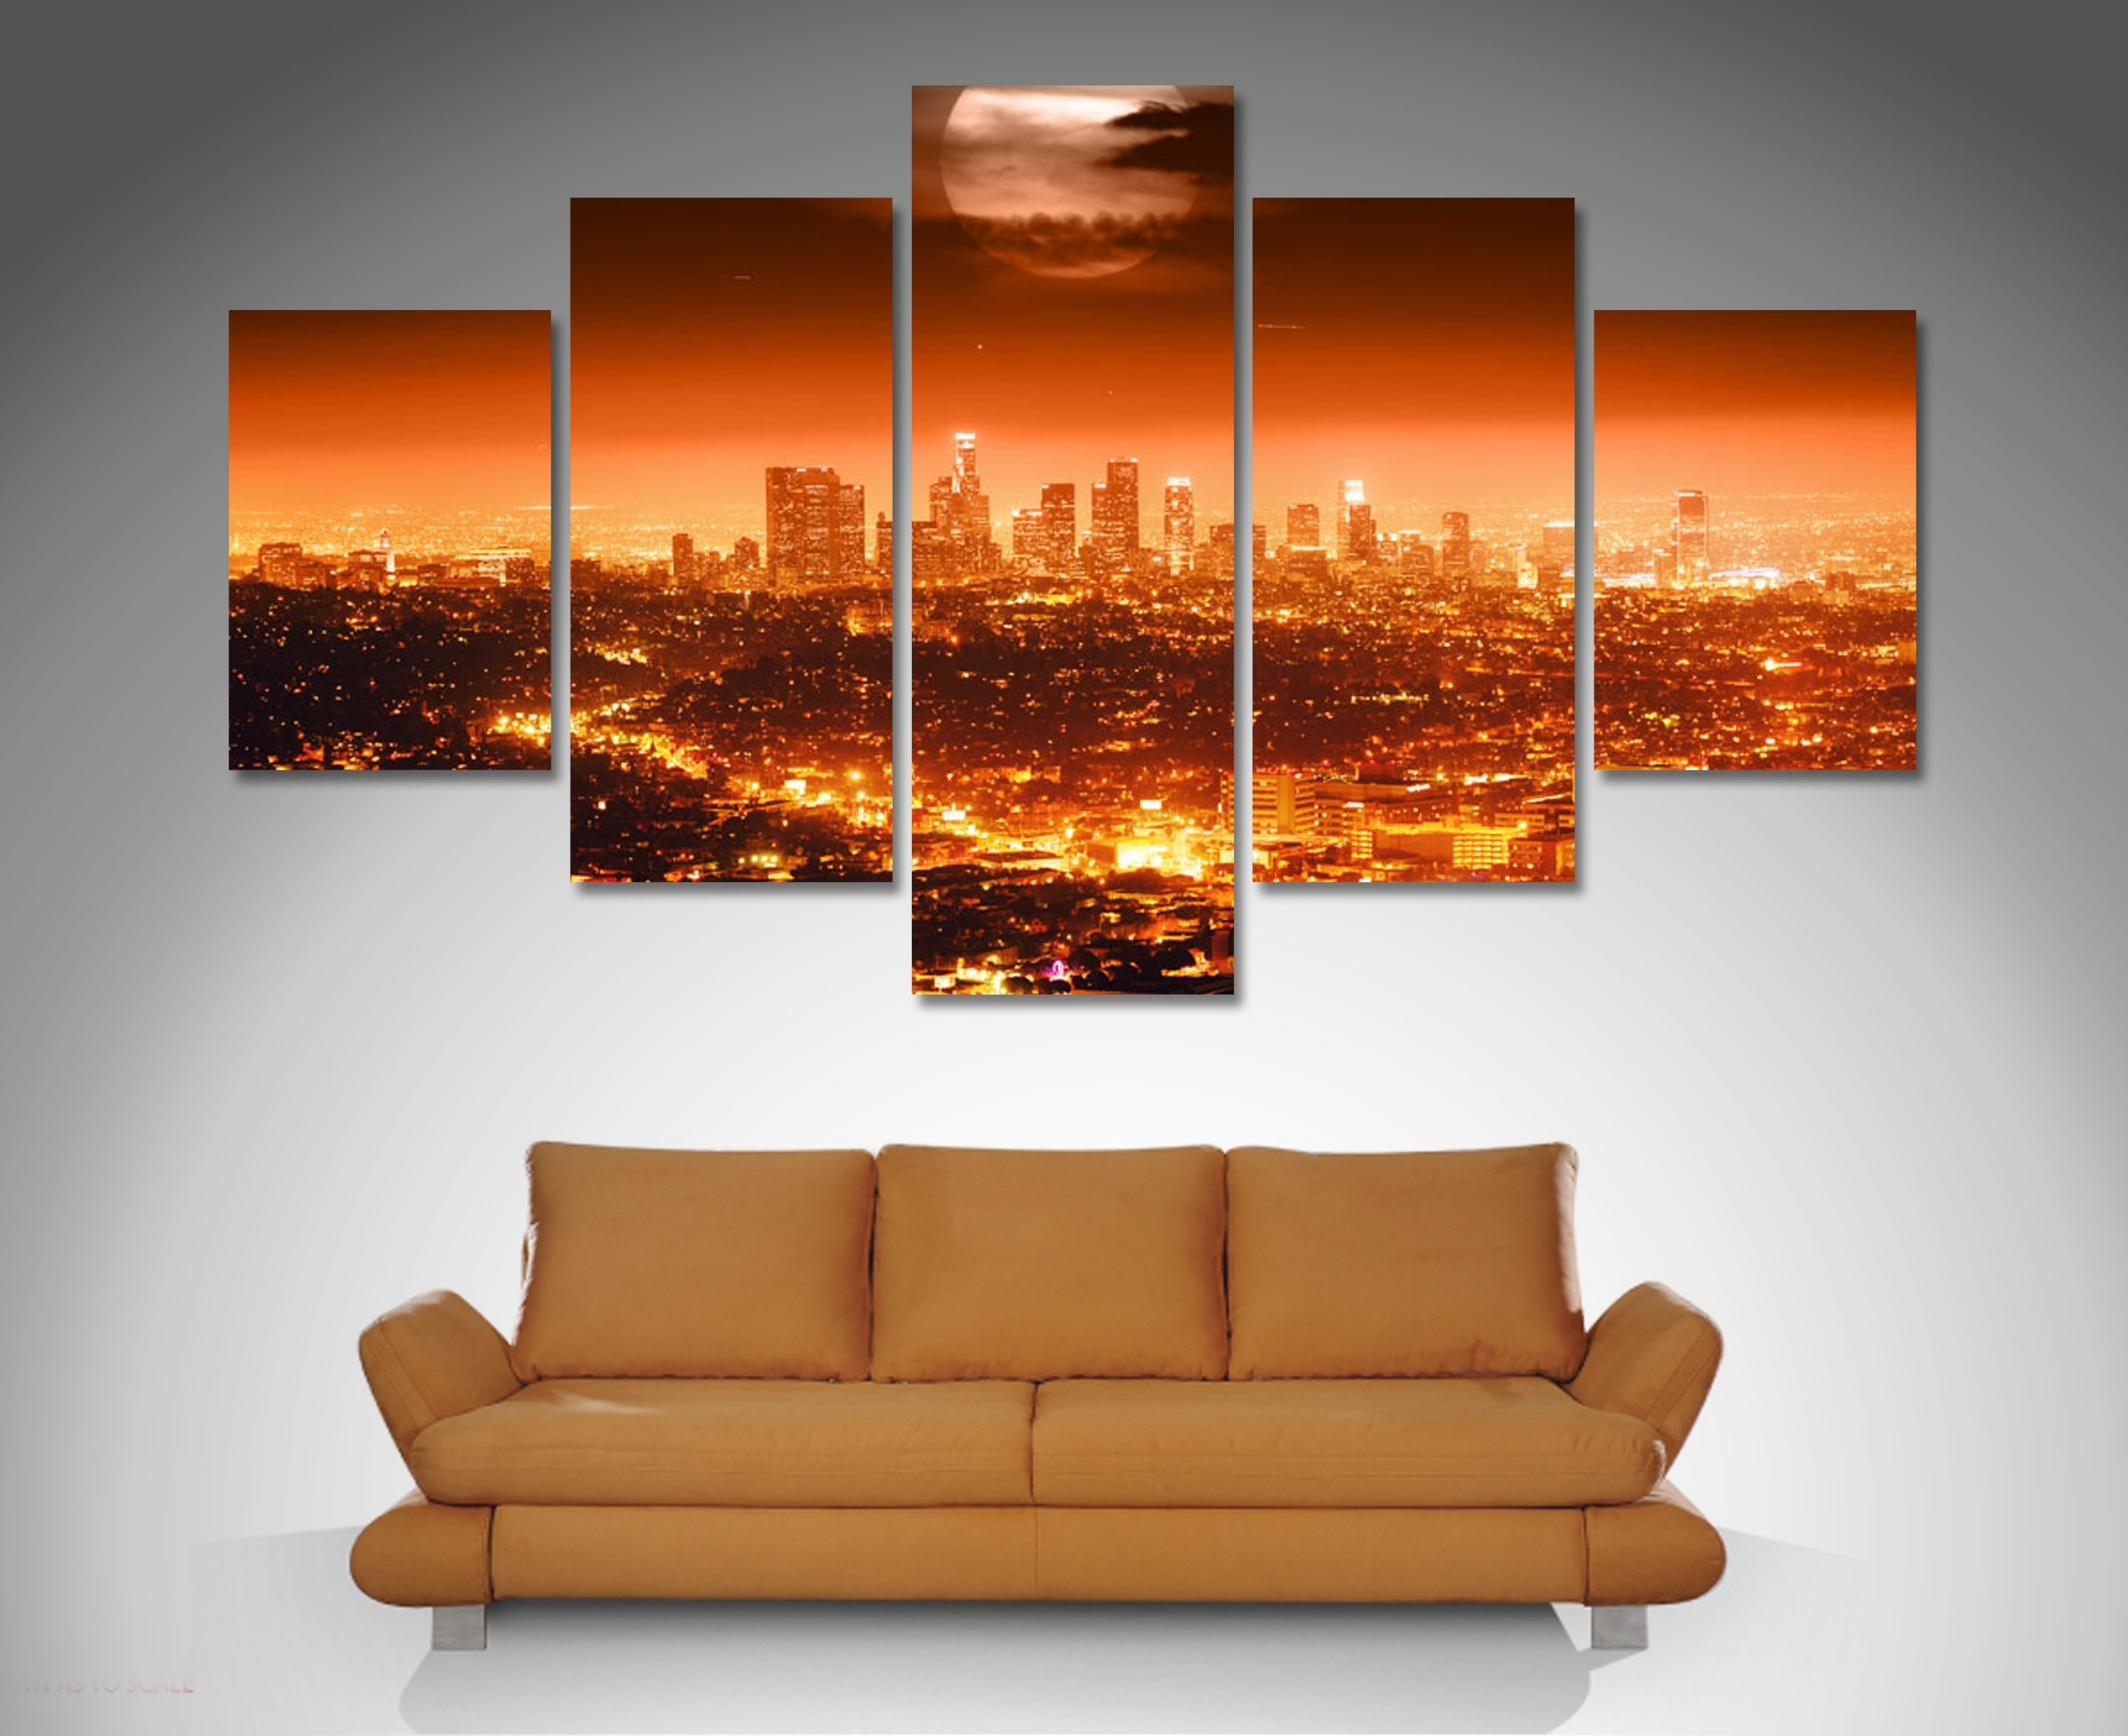 Los Angeles 5 Panel Wall Art Canvas Print Intended For 2018 5 Panel Wall Art (View 5 of 20)